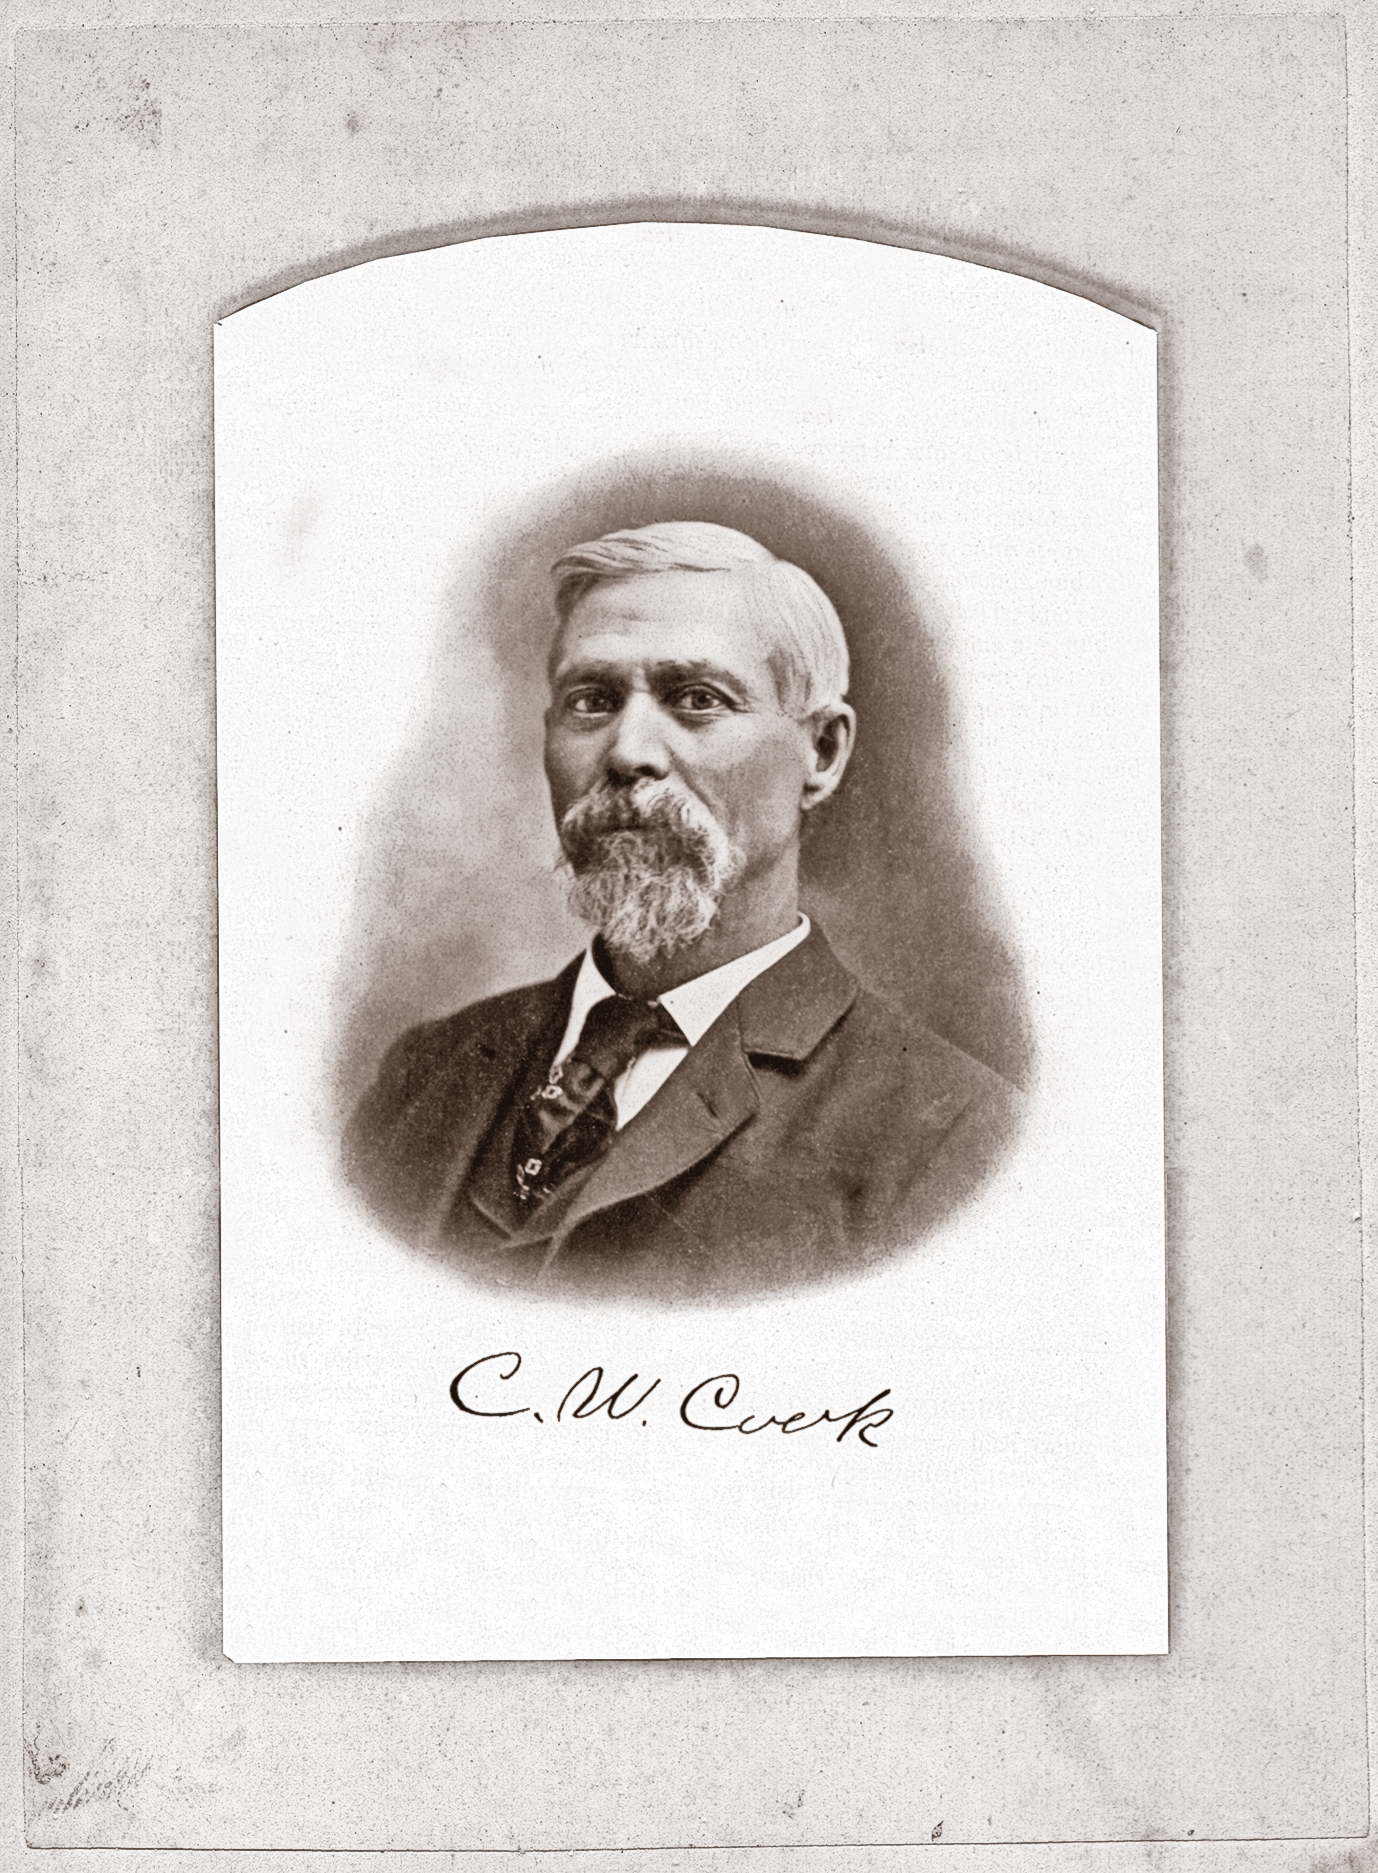 Charles W. Cook